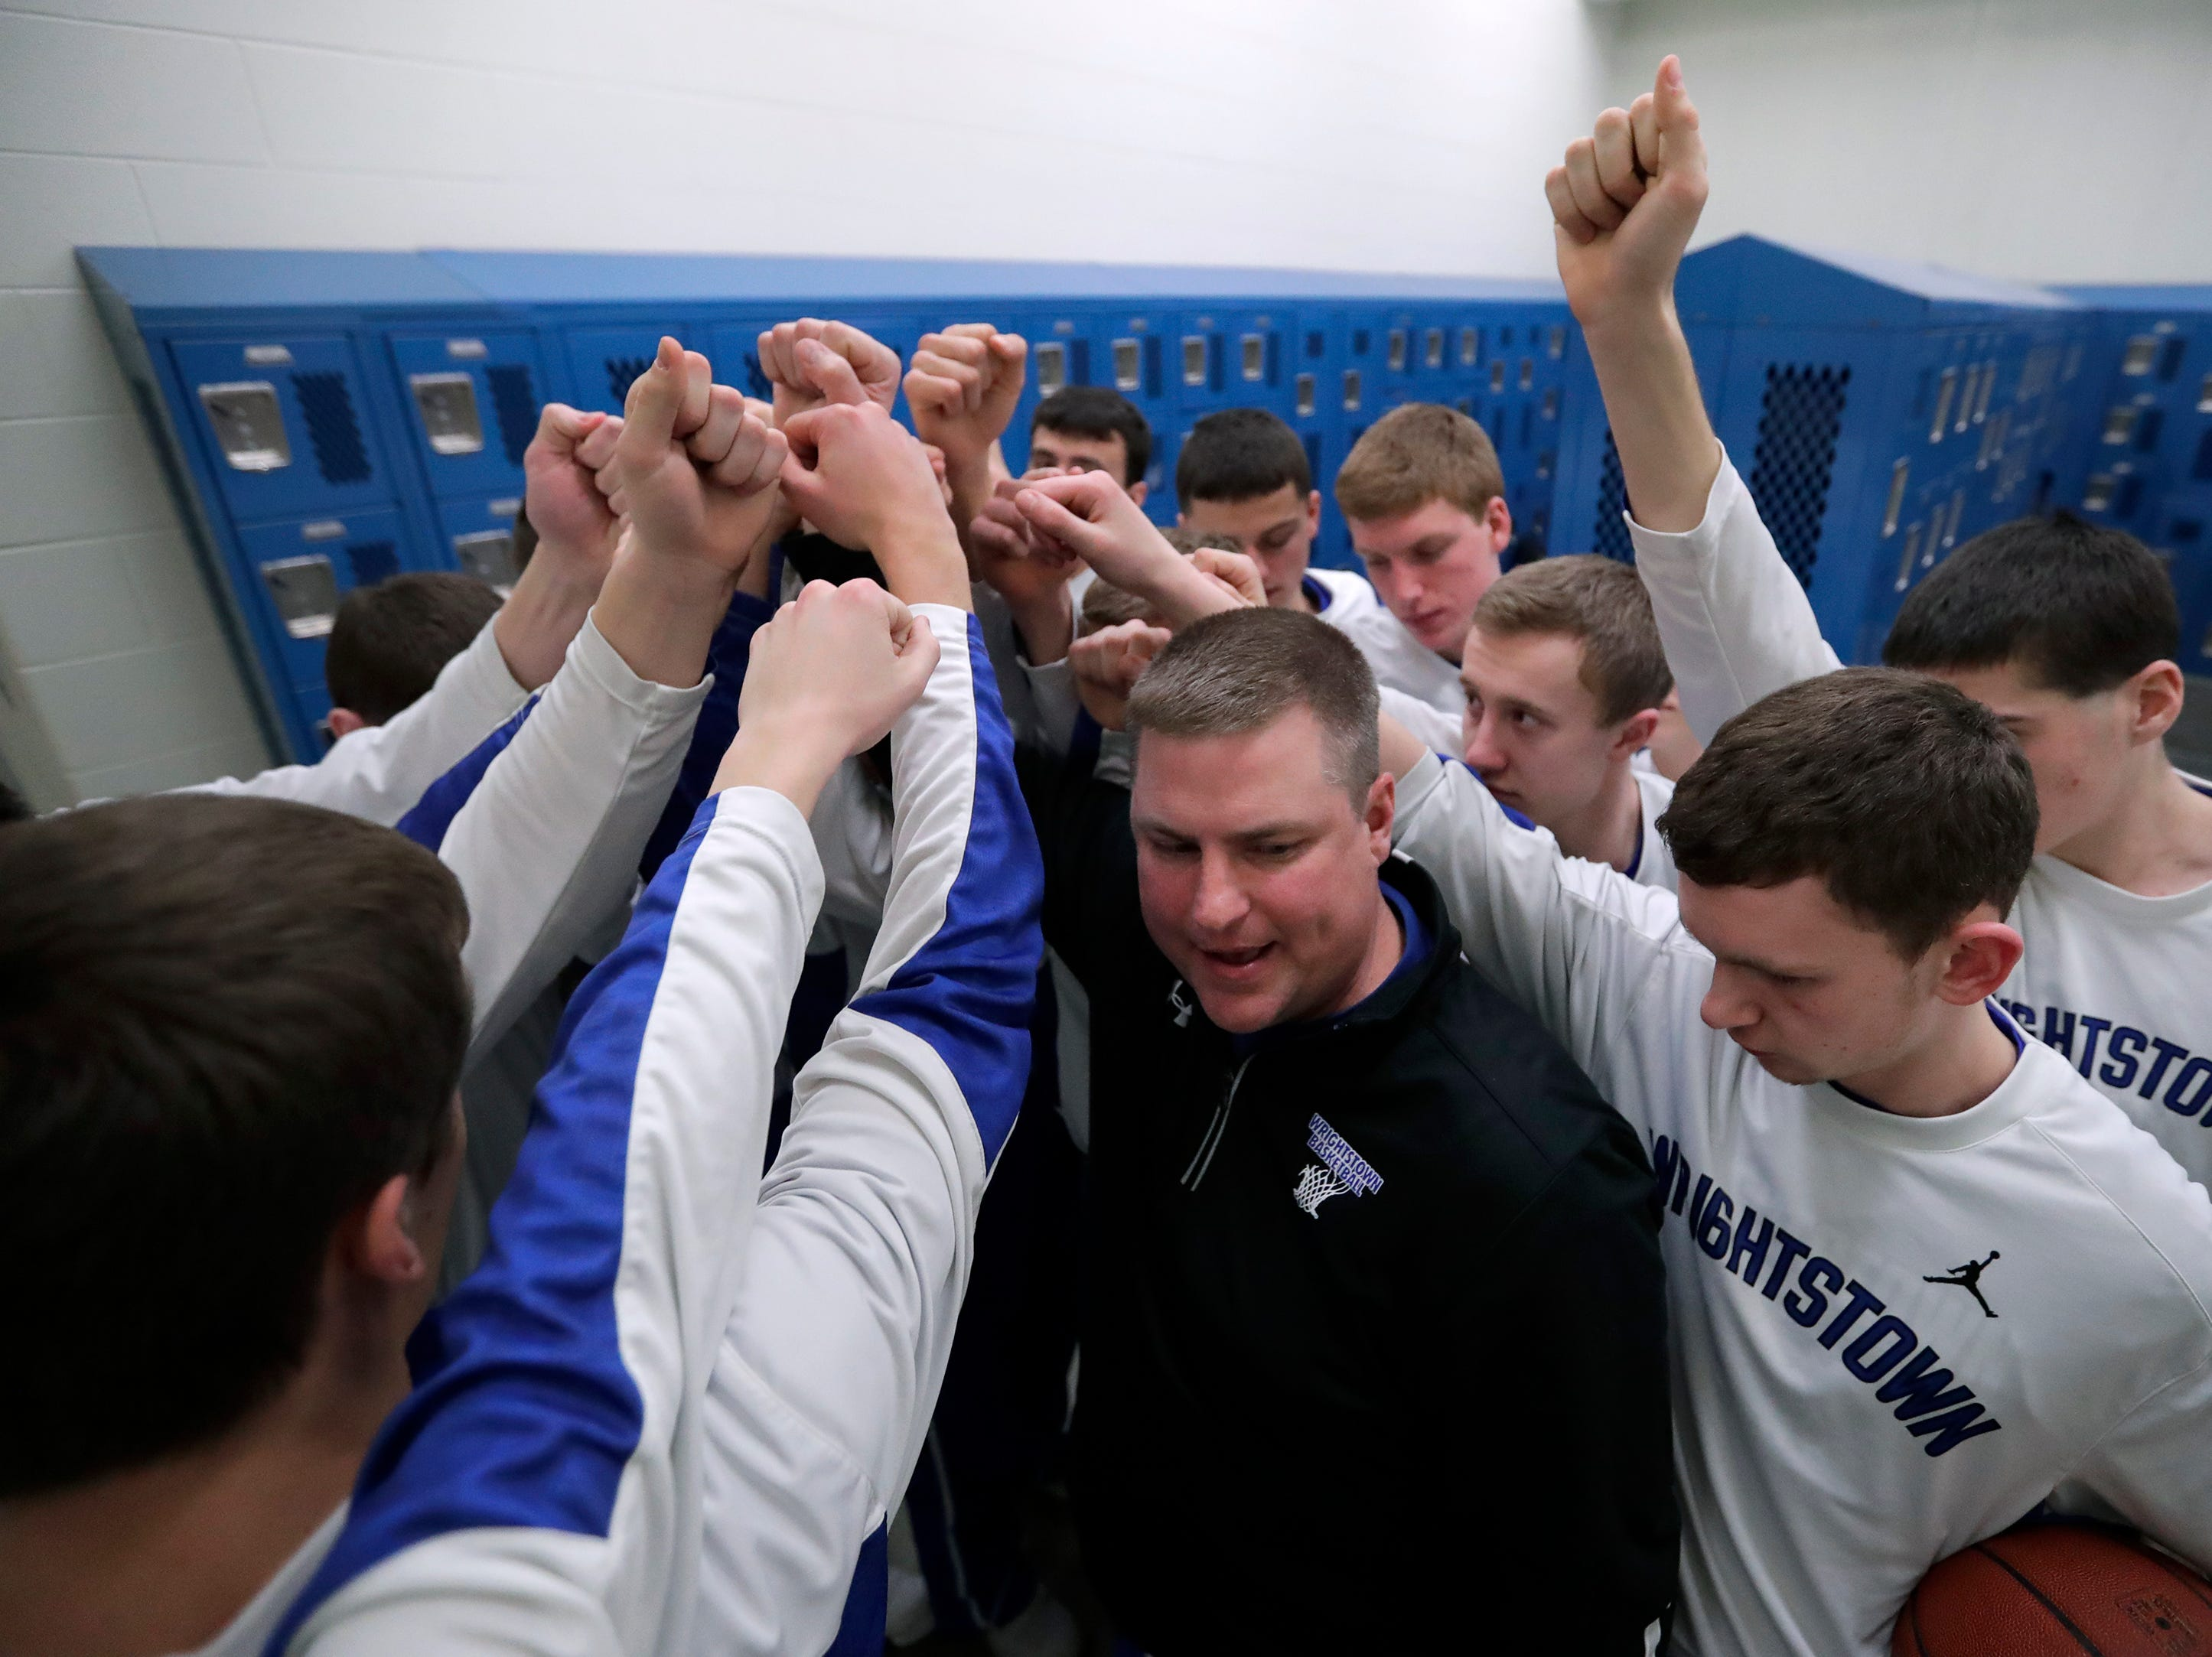 Wrightstown High School's coach Cory Haese, center, brings his team together in the locker room moments before taking to the court against Little Chute High School during their boys basketball game Friday, February 1, 2019, in Little Chute, Wis. 